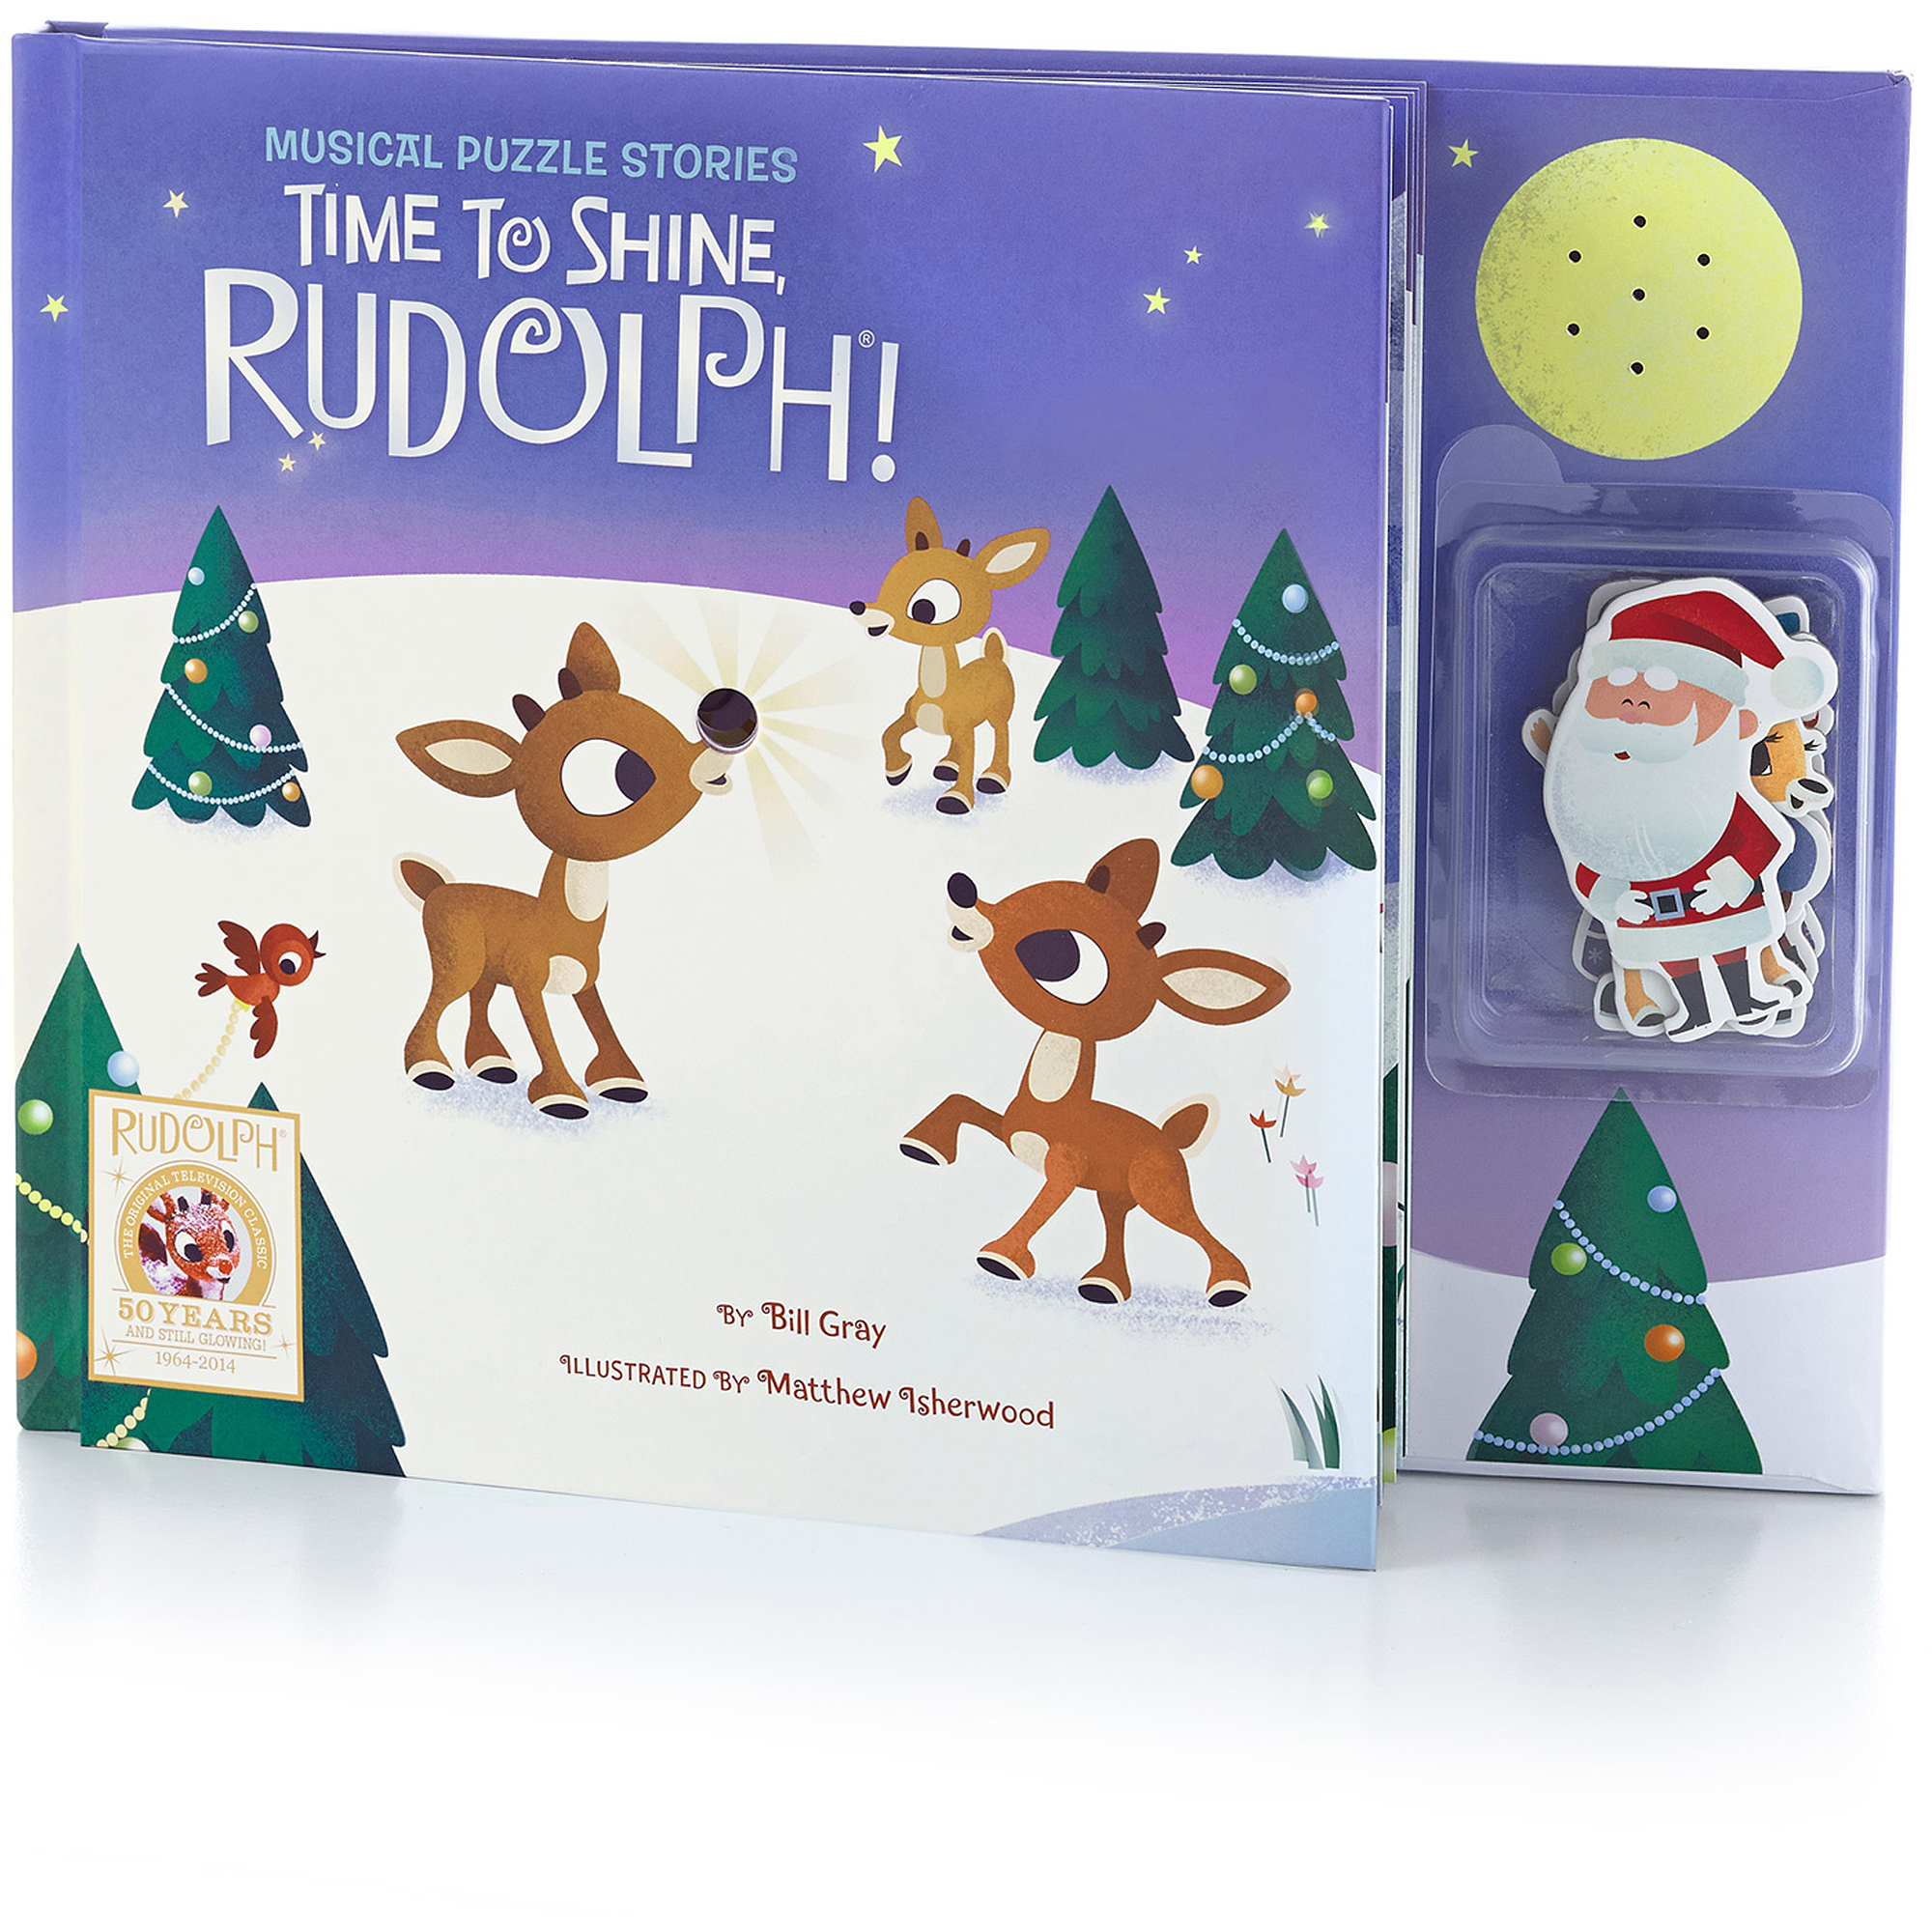 Hallmark Rudolph Musical Puzzle Book, Time to Shine